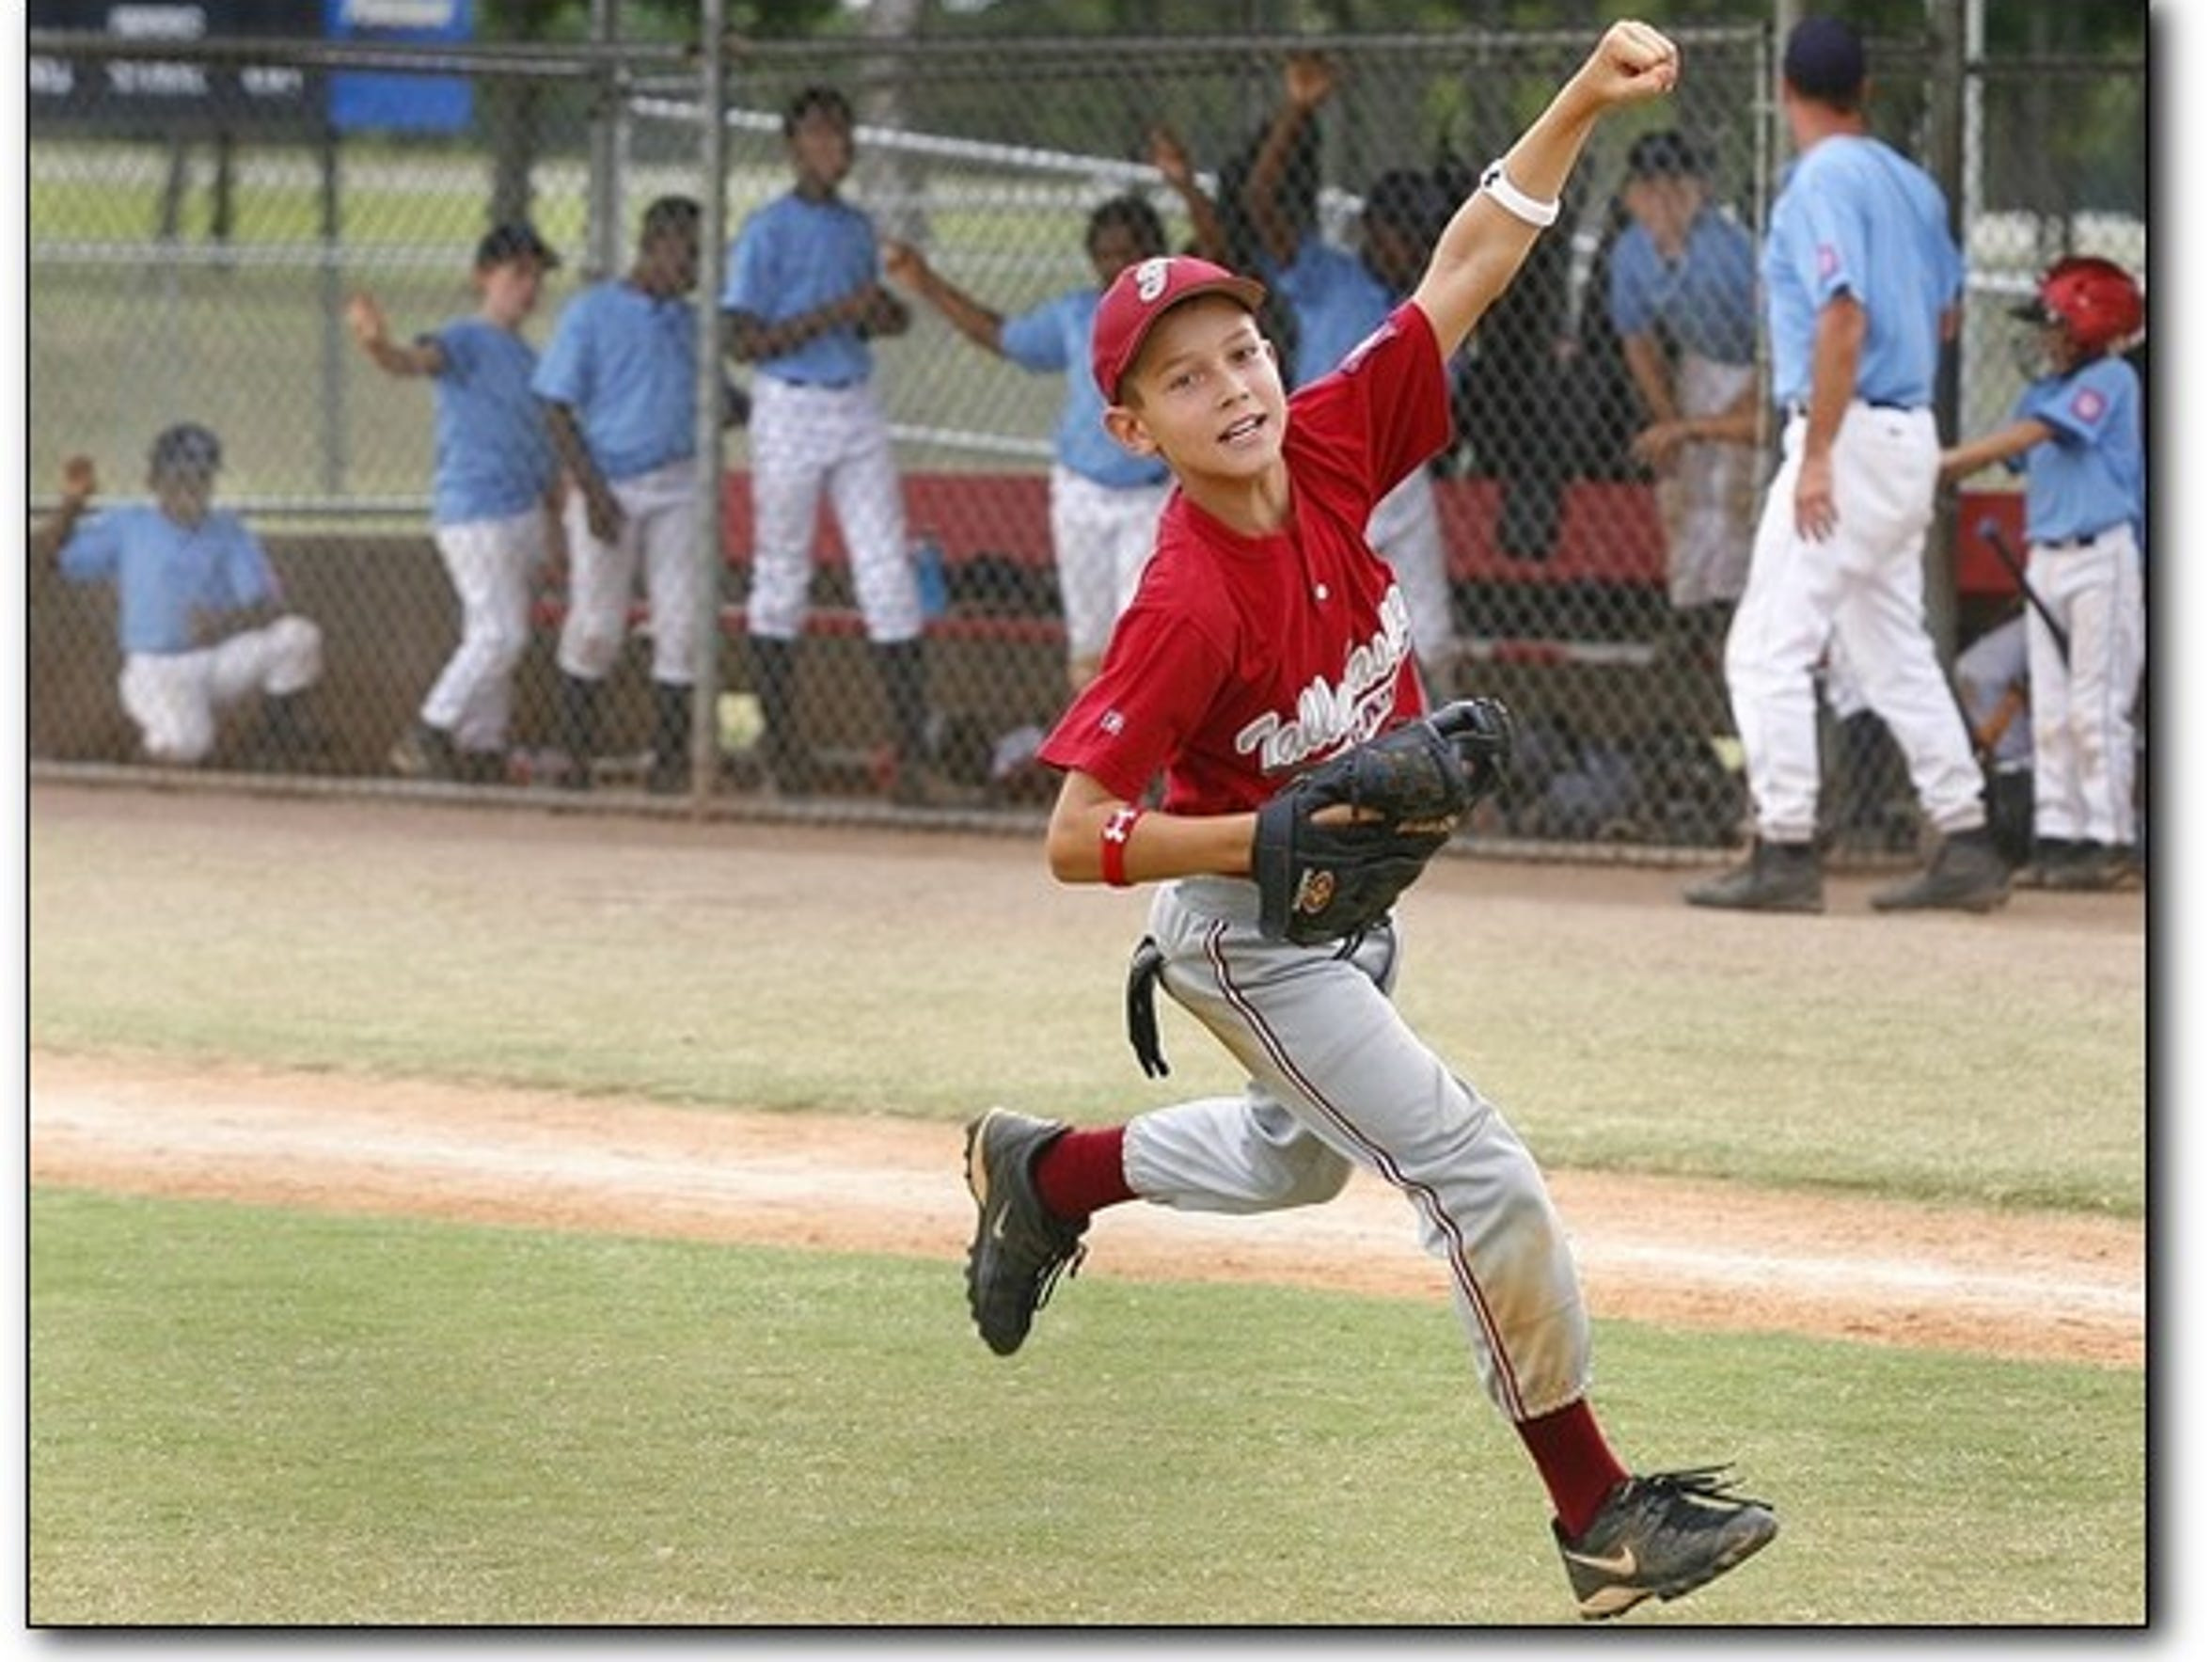 Holton in the 2006 Dizzy Dean World Series at the age